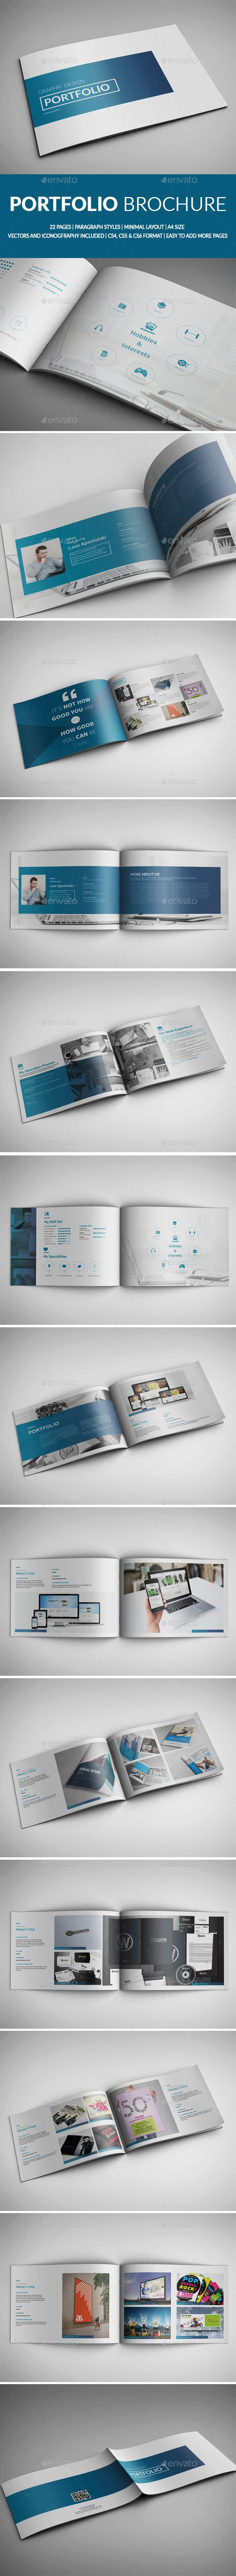 Portfolio Brochure Template InDesign INDD #design Download: http://graphicriver.net/item/portfolio-template/13485486?ref=ksioks